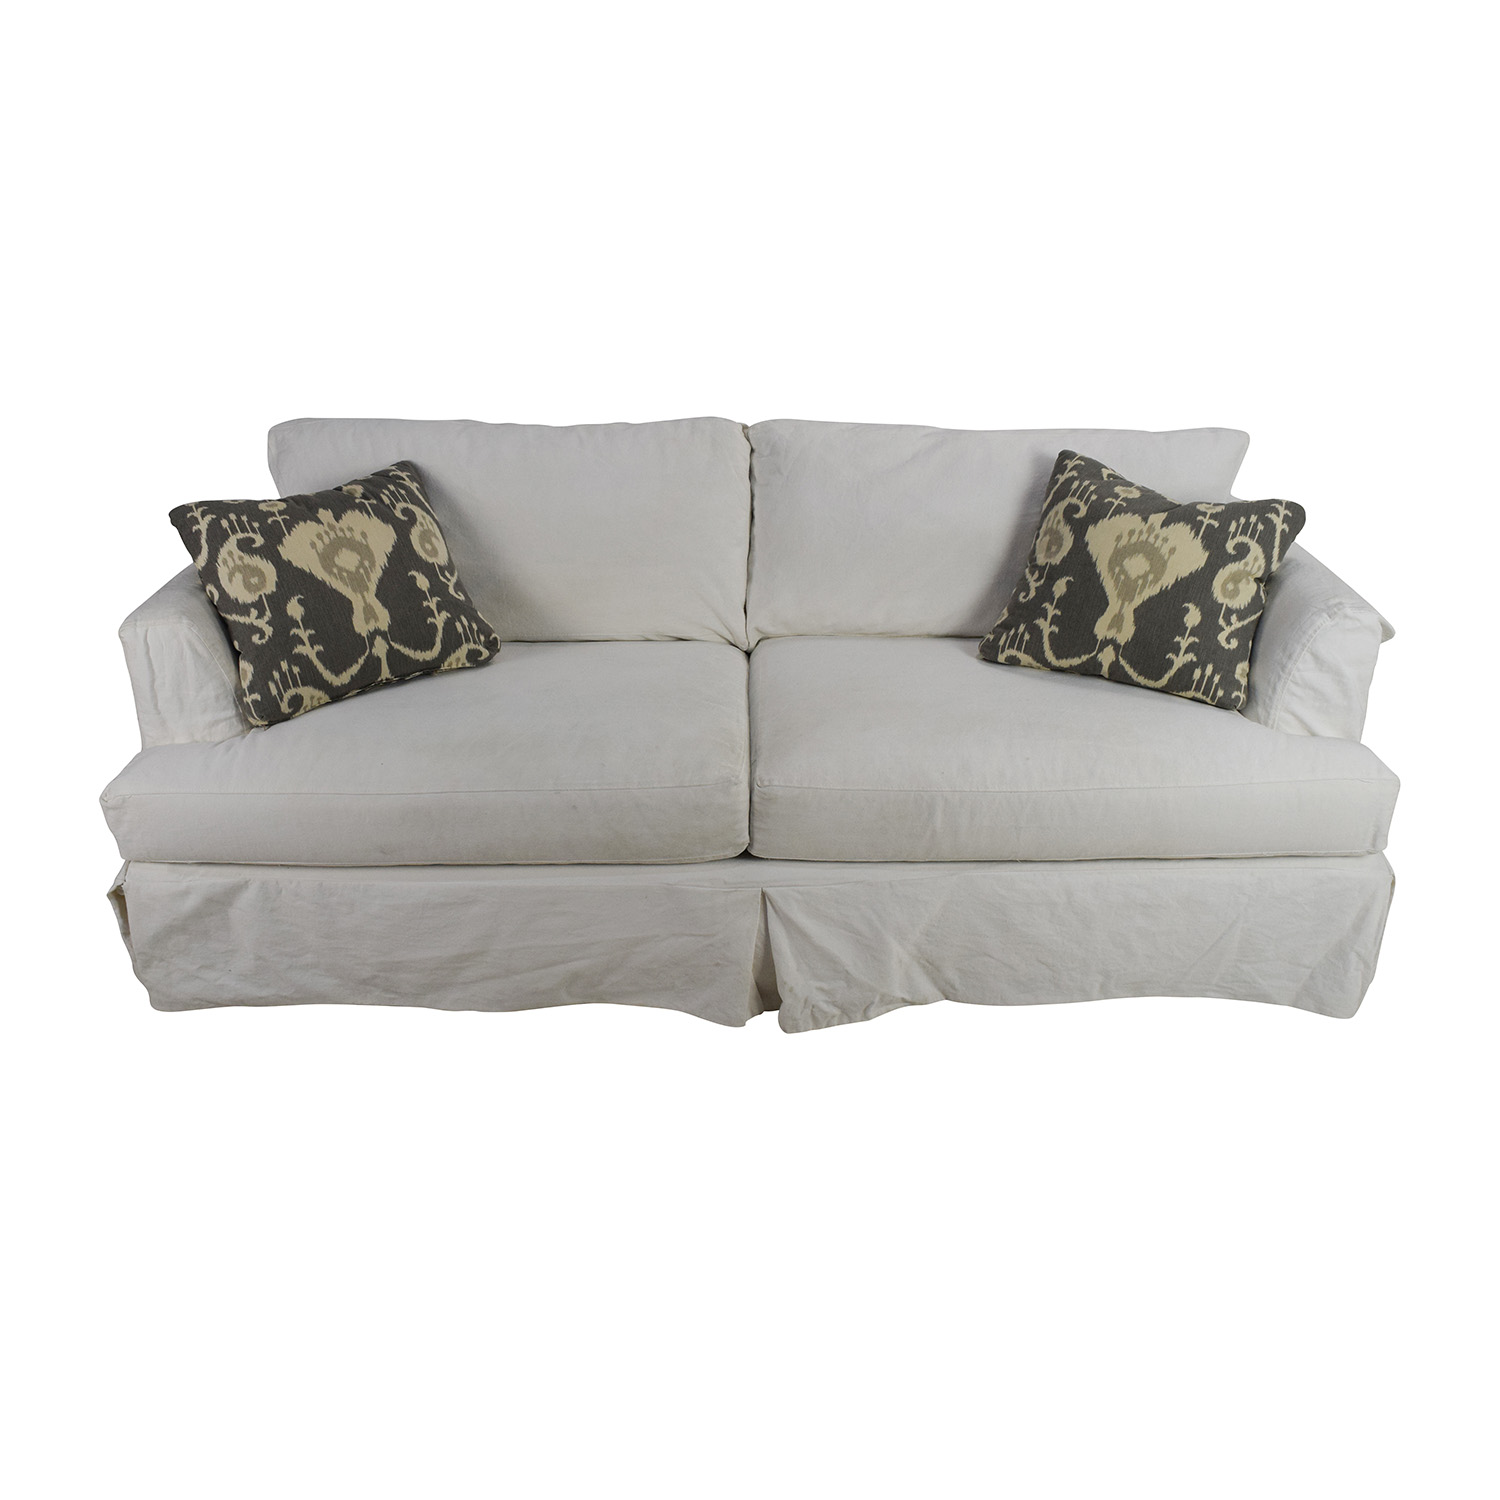 Jennifer convertibles sofas 37 off jennifer convertibles for Sectional sofa jennifer convertible